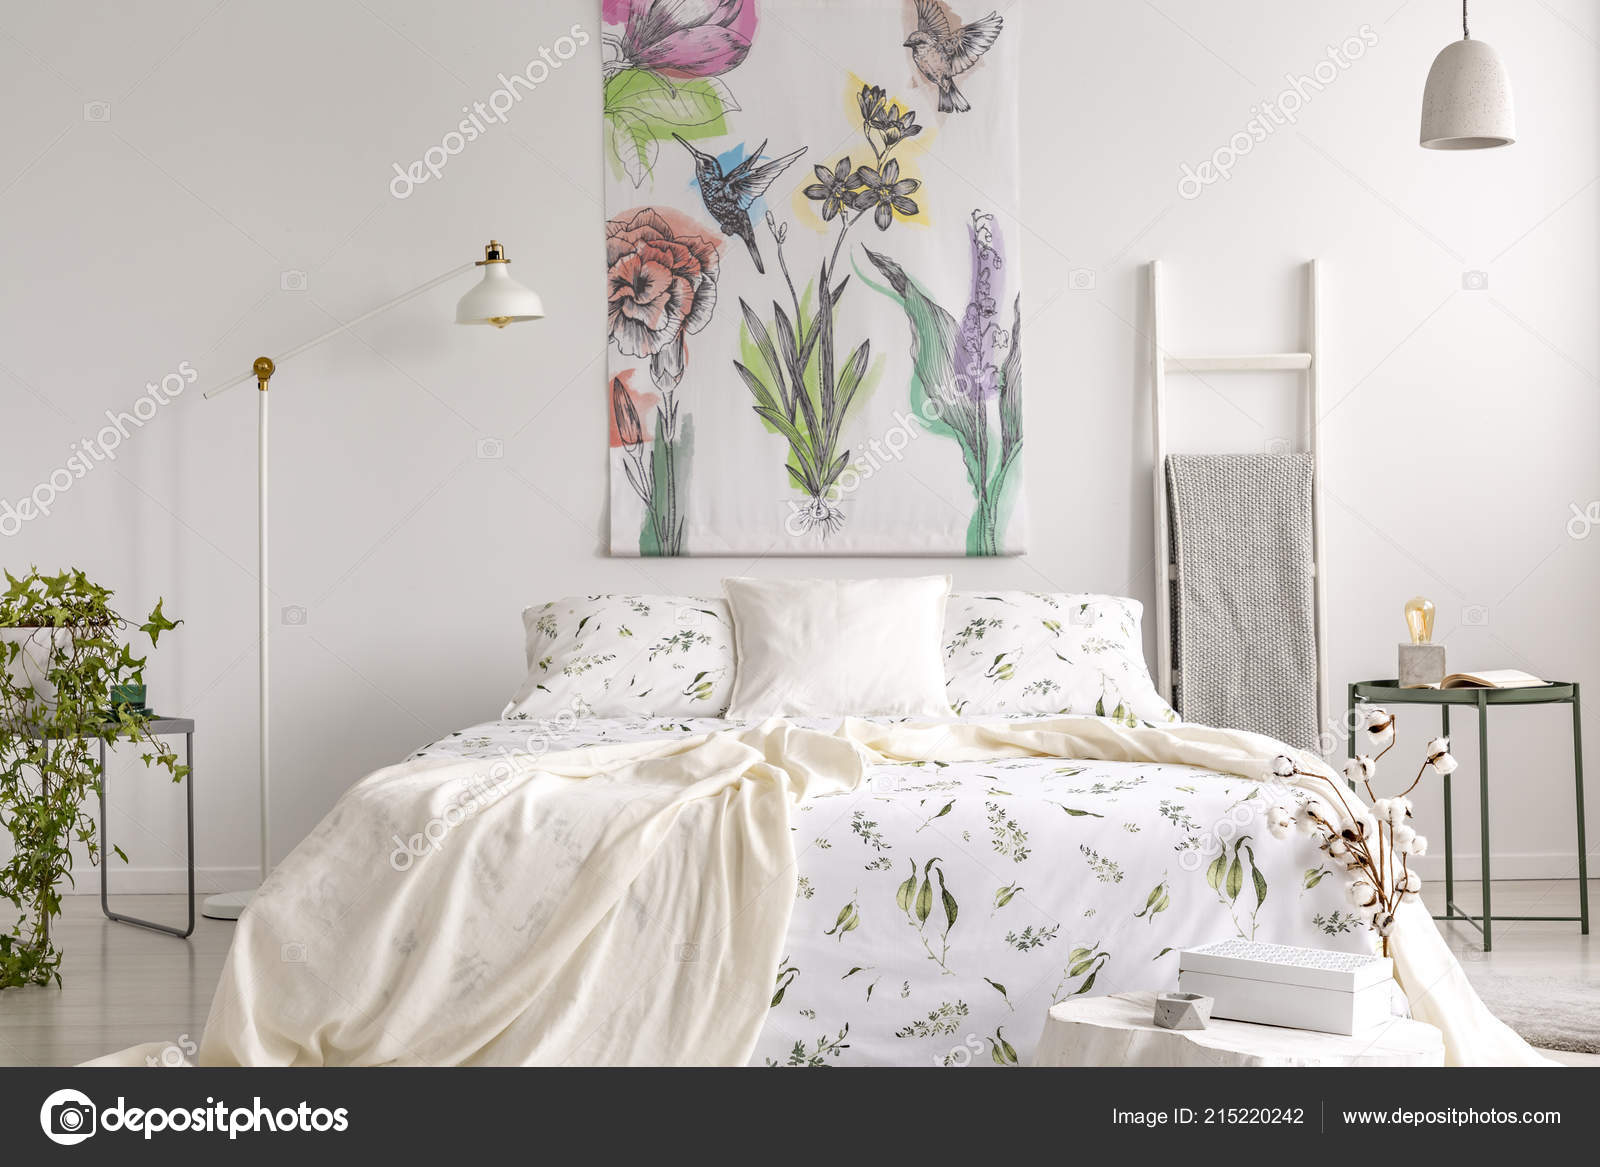 Fabric Above Bed Wall Art Flowers Birds Painted Fabric Bed Which Dressed Green Stock Photo C Photographee Eu 215220242